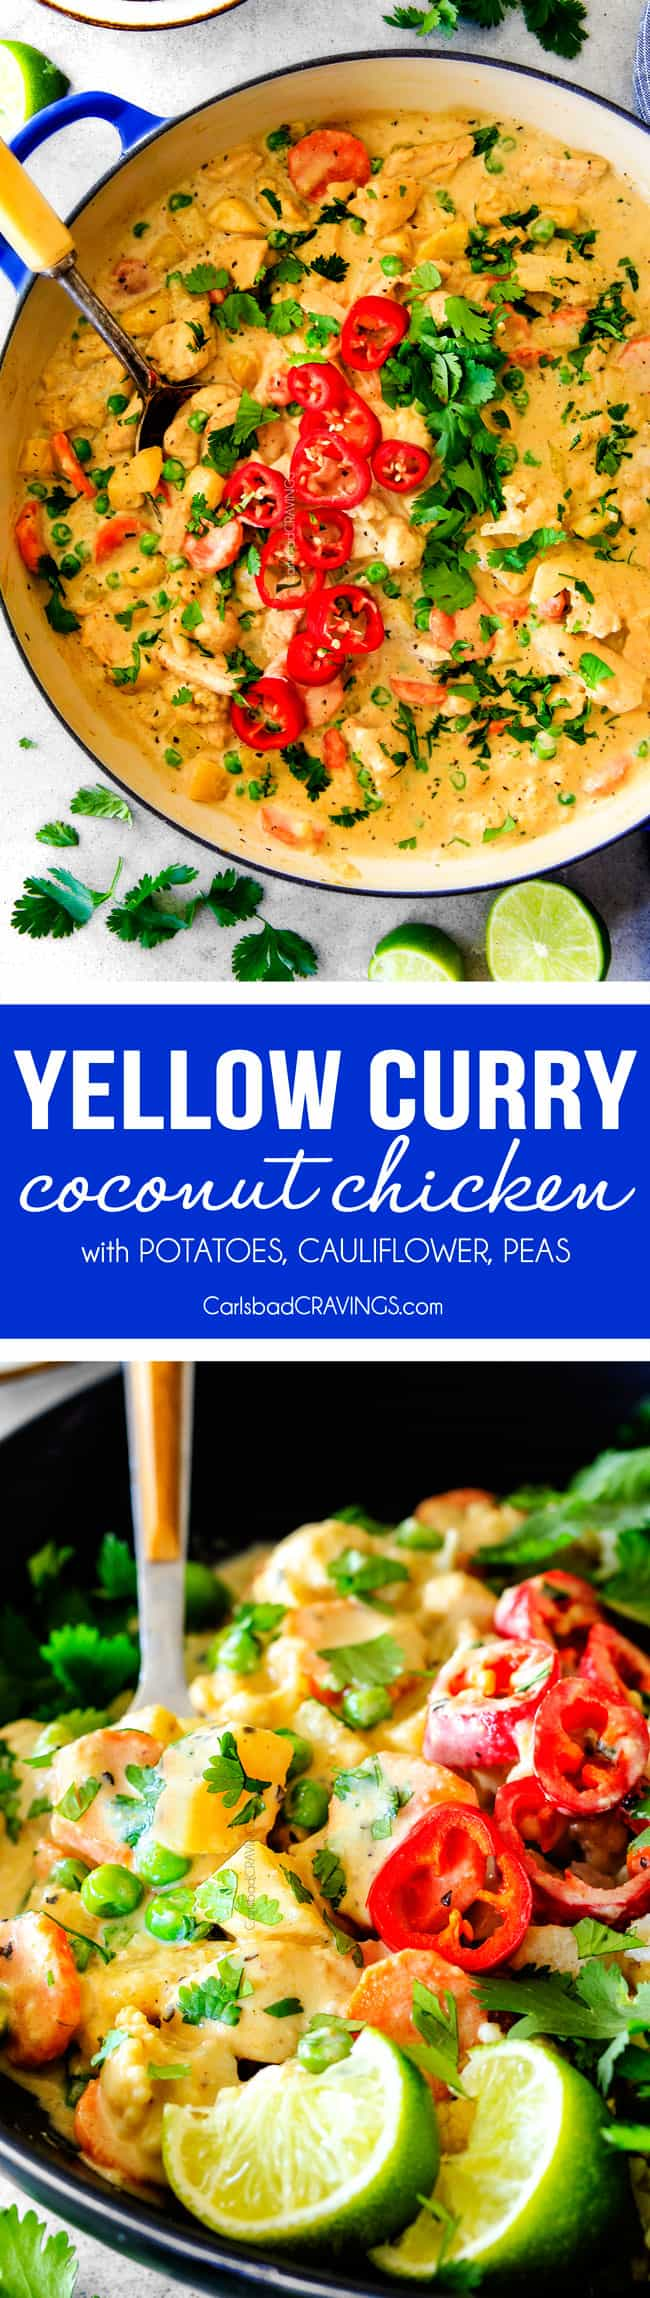 This EASY Thai Yellow Curry Chicken tastes straight out of a restaurant! Its wonderfully thick and creamy, bursting with flavor and veggies (I highly recommend the listed potatoes, cauliflower and peas) and all made in one pot! Definitely a hit at our house!